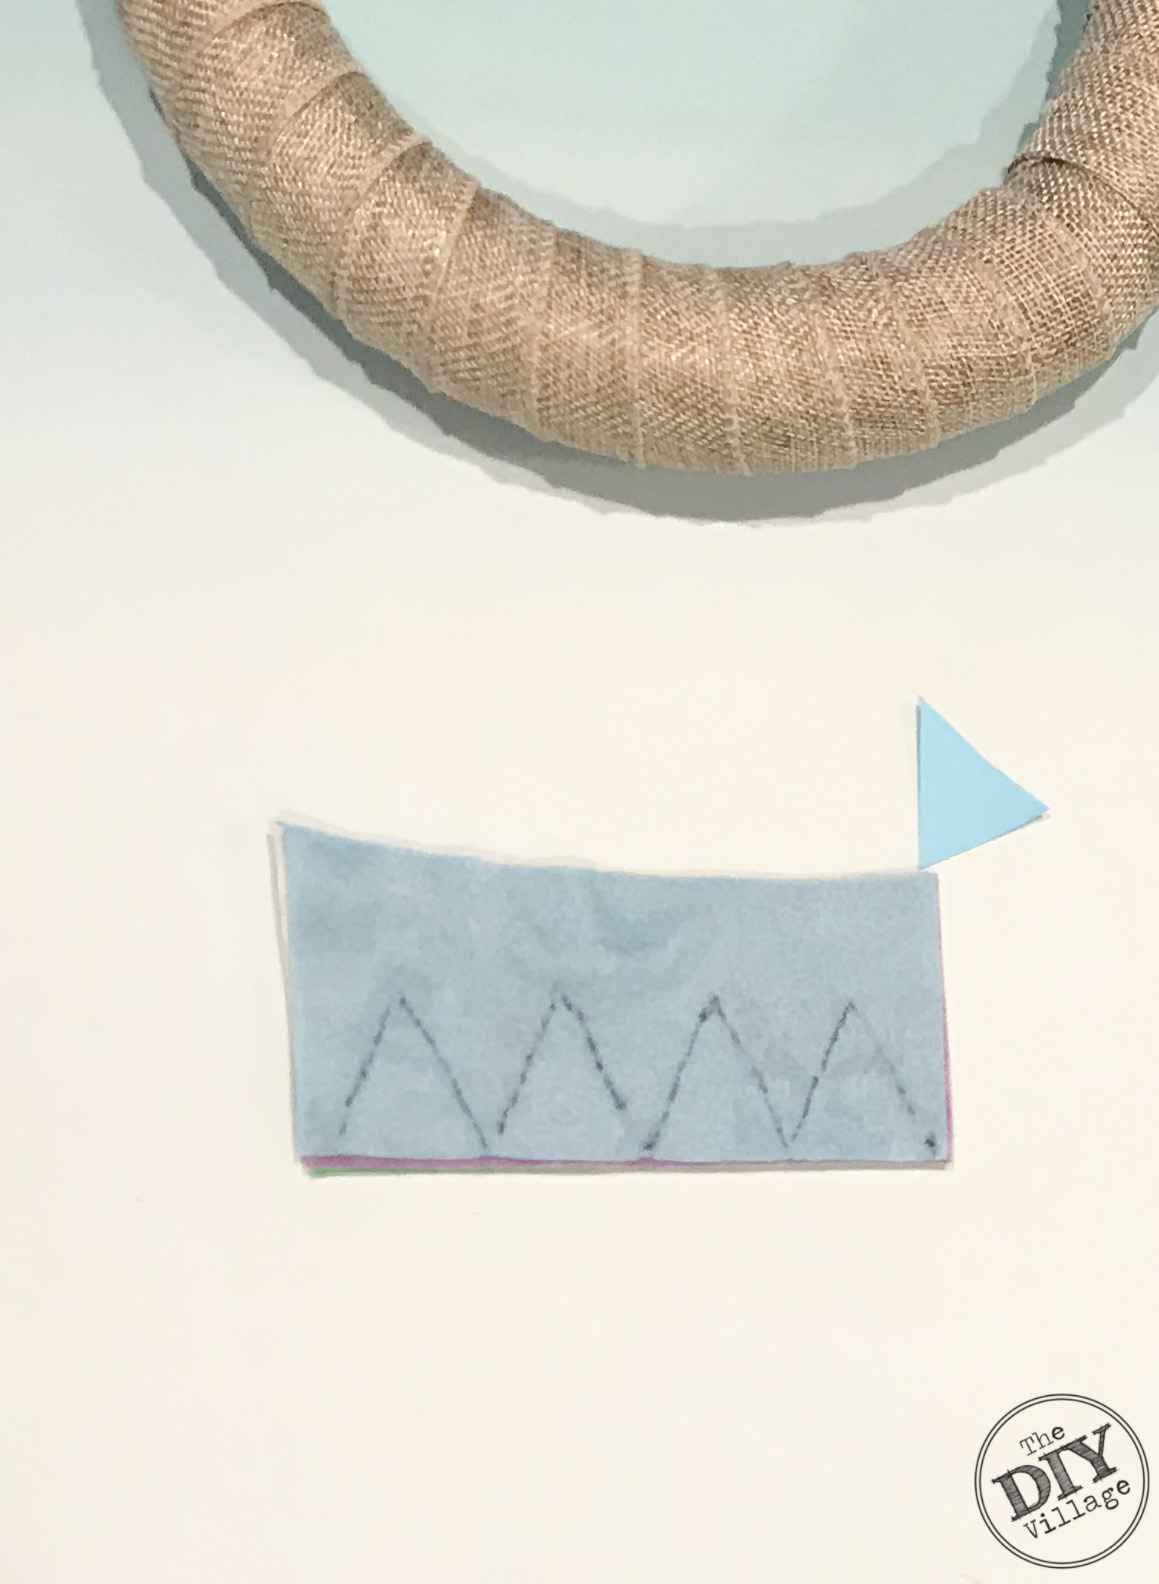 Felt with triangle shapes and wreath